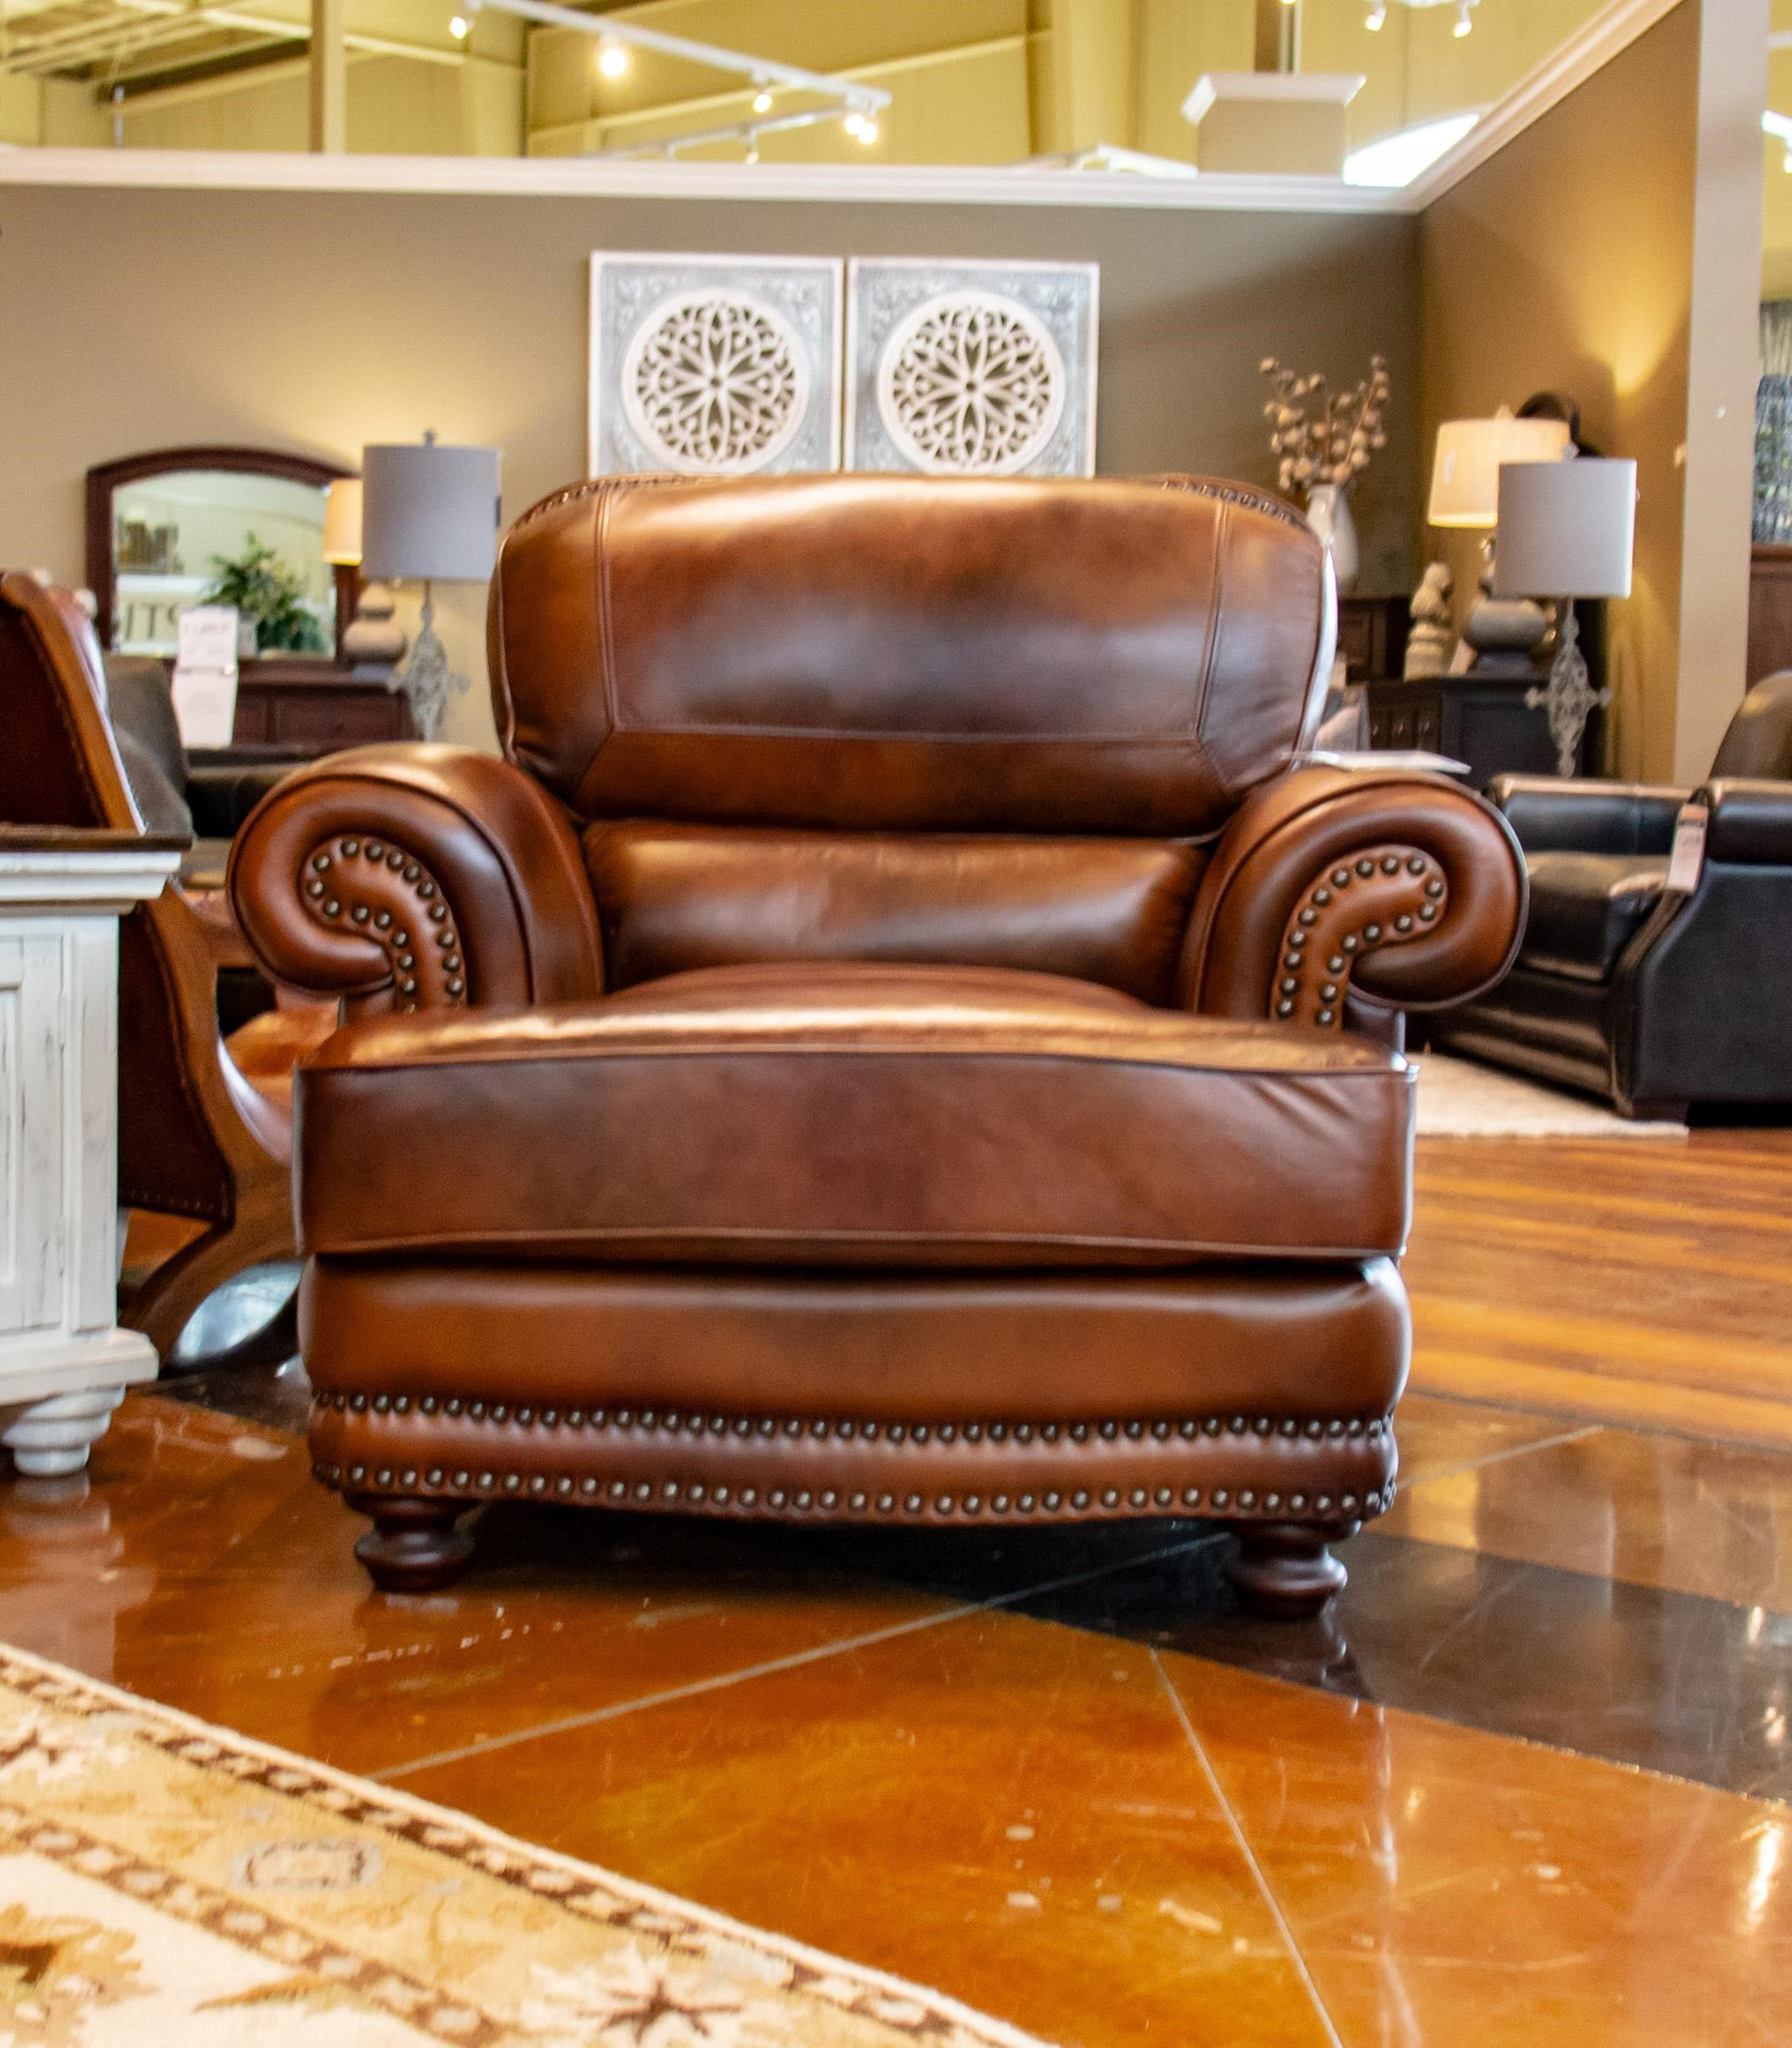 LG Interiors Cowboy D6266-06,04234 Leather Chair